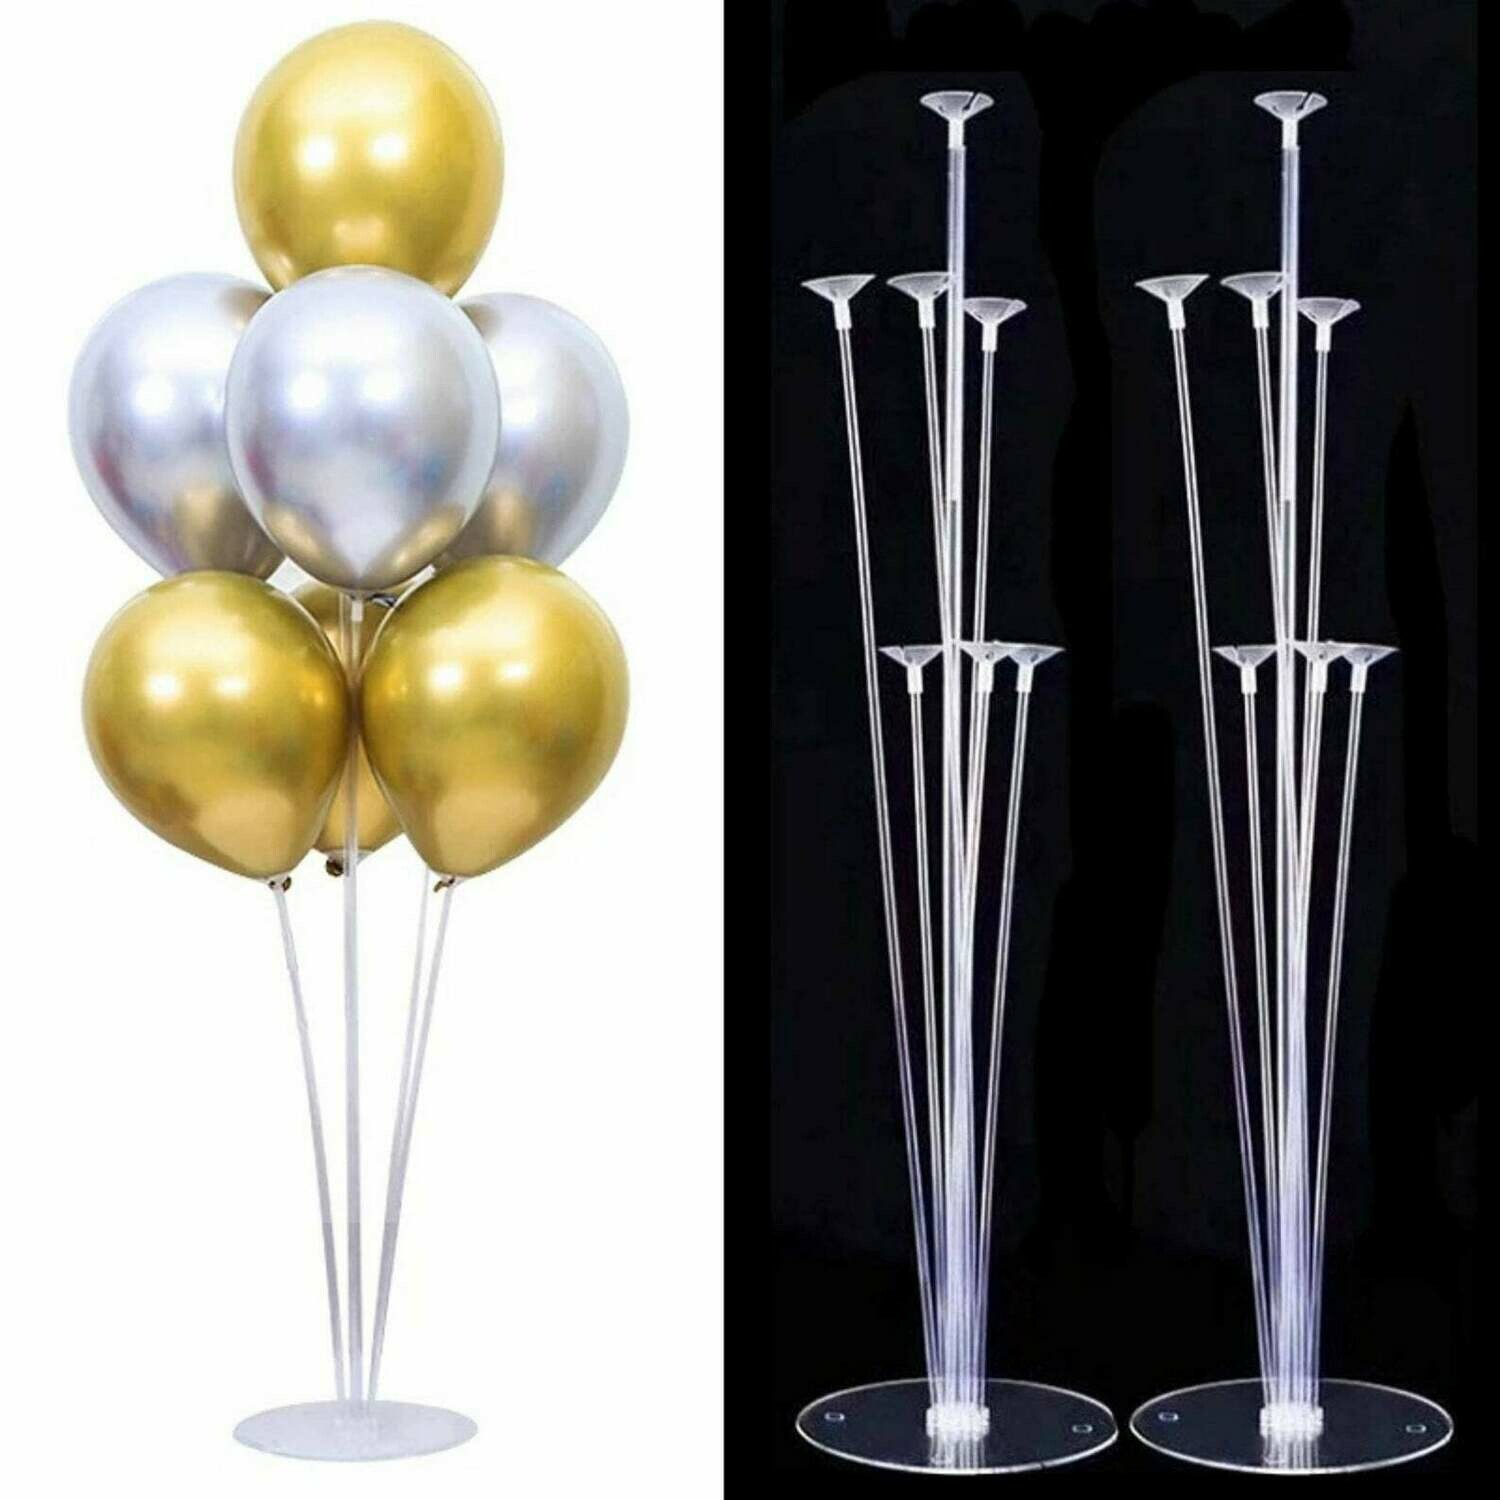 Tubes balloon stand birthday balloons arch stick holder wedding decoration balloon  birthday party decorations kids ball